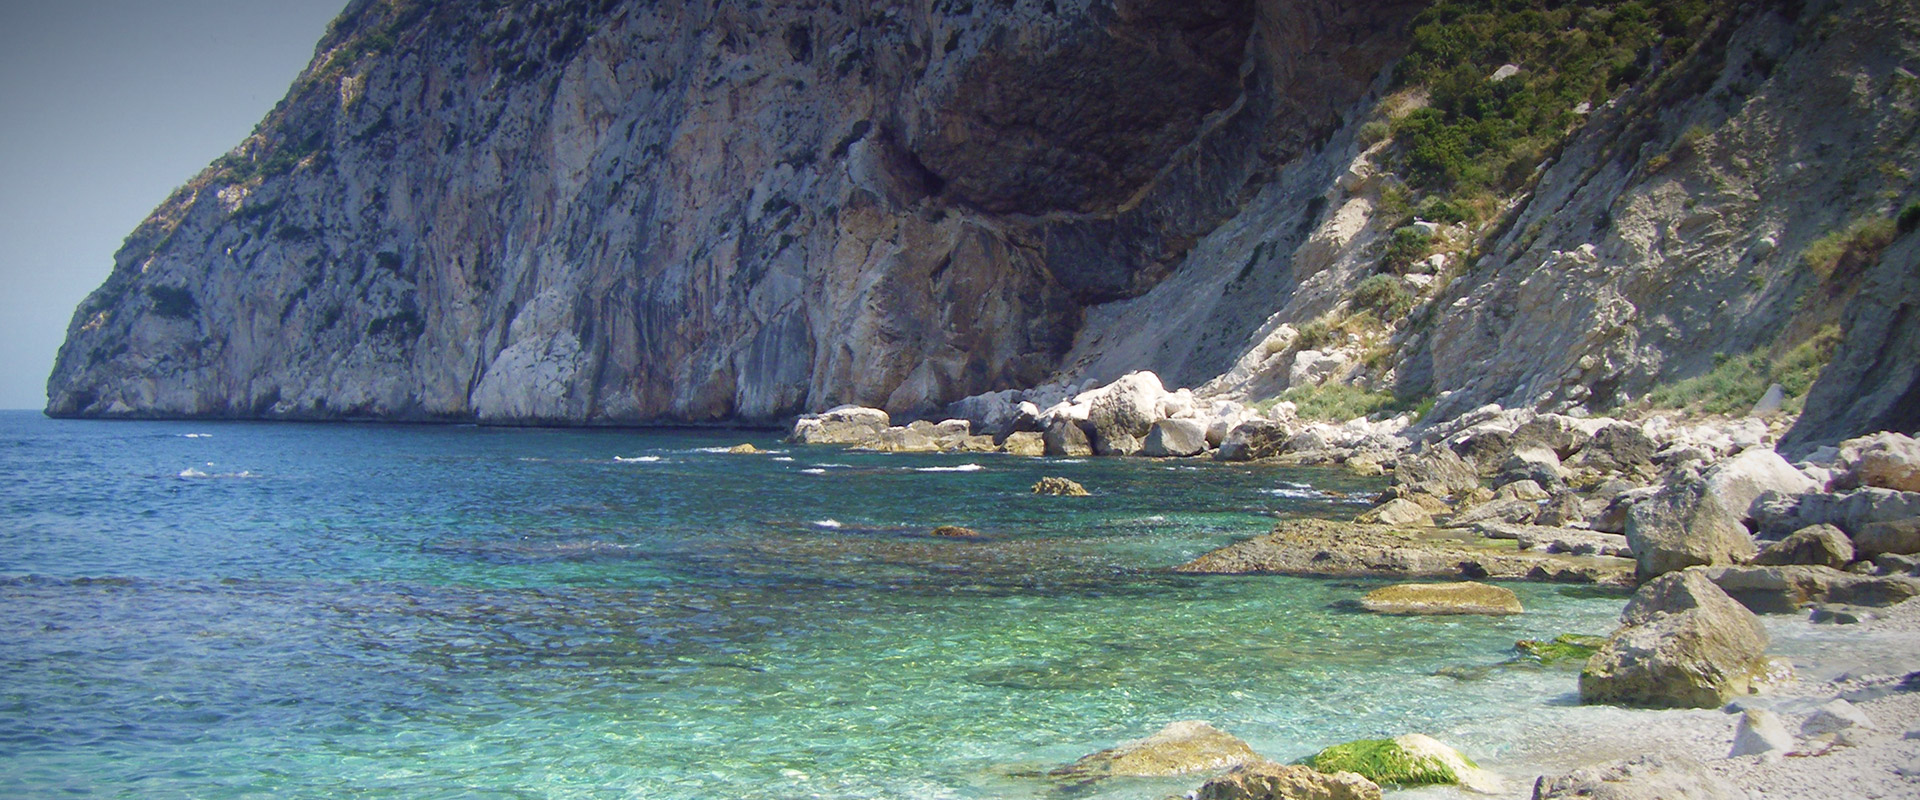 Cove in the Peñón de Ifach